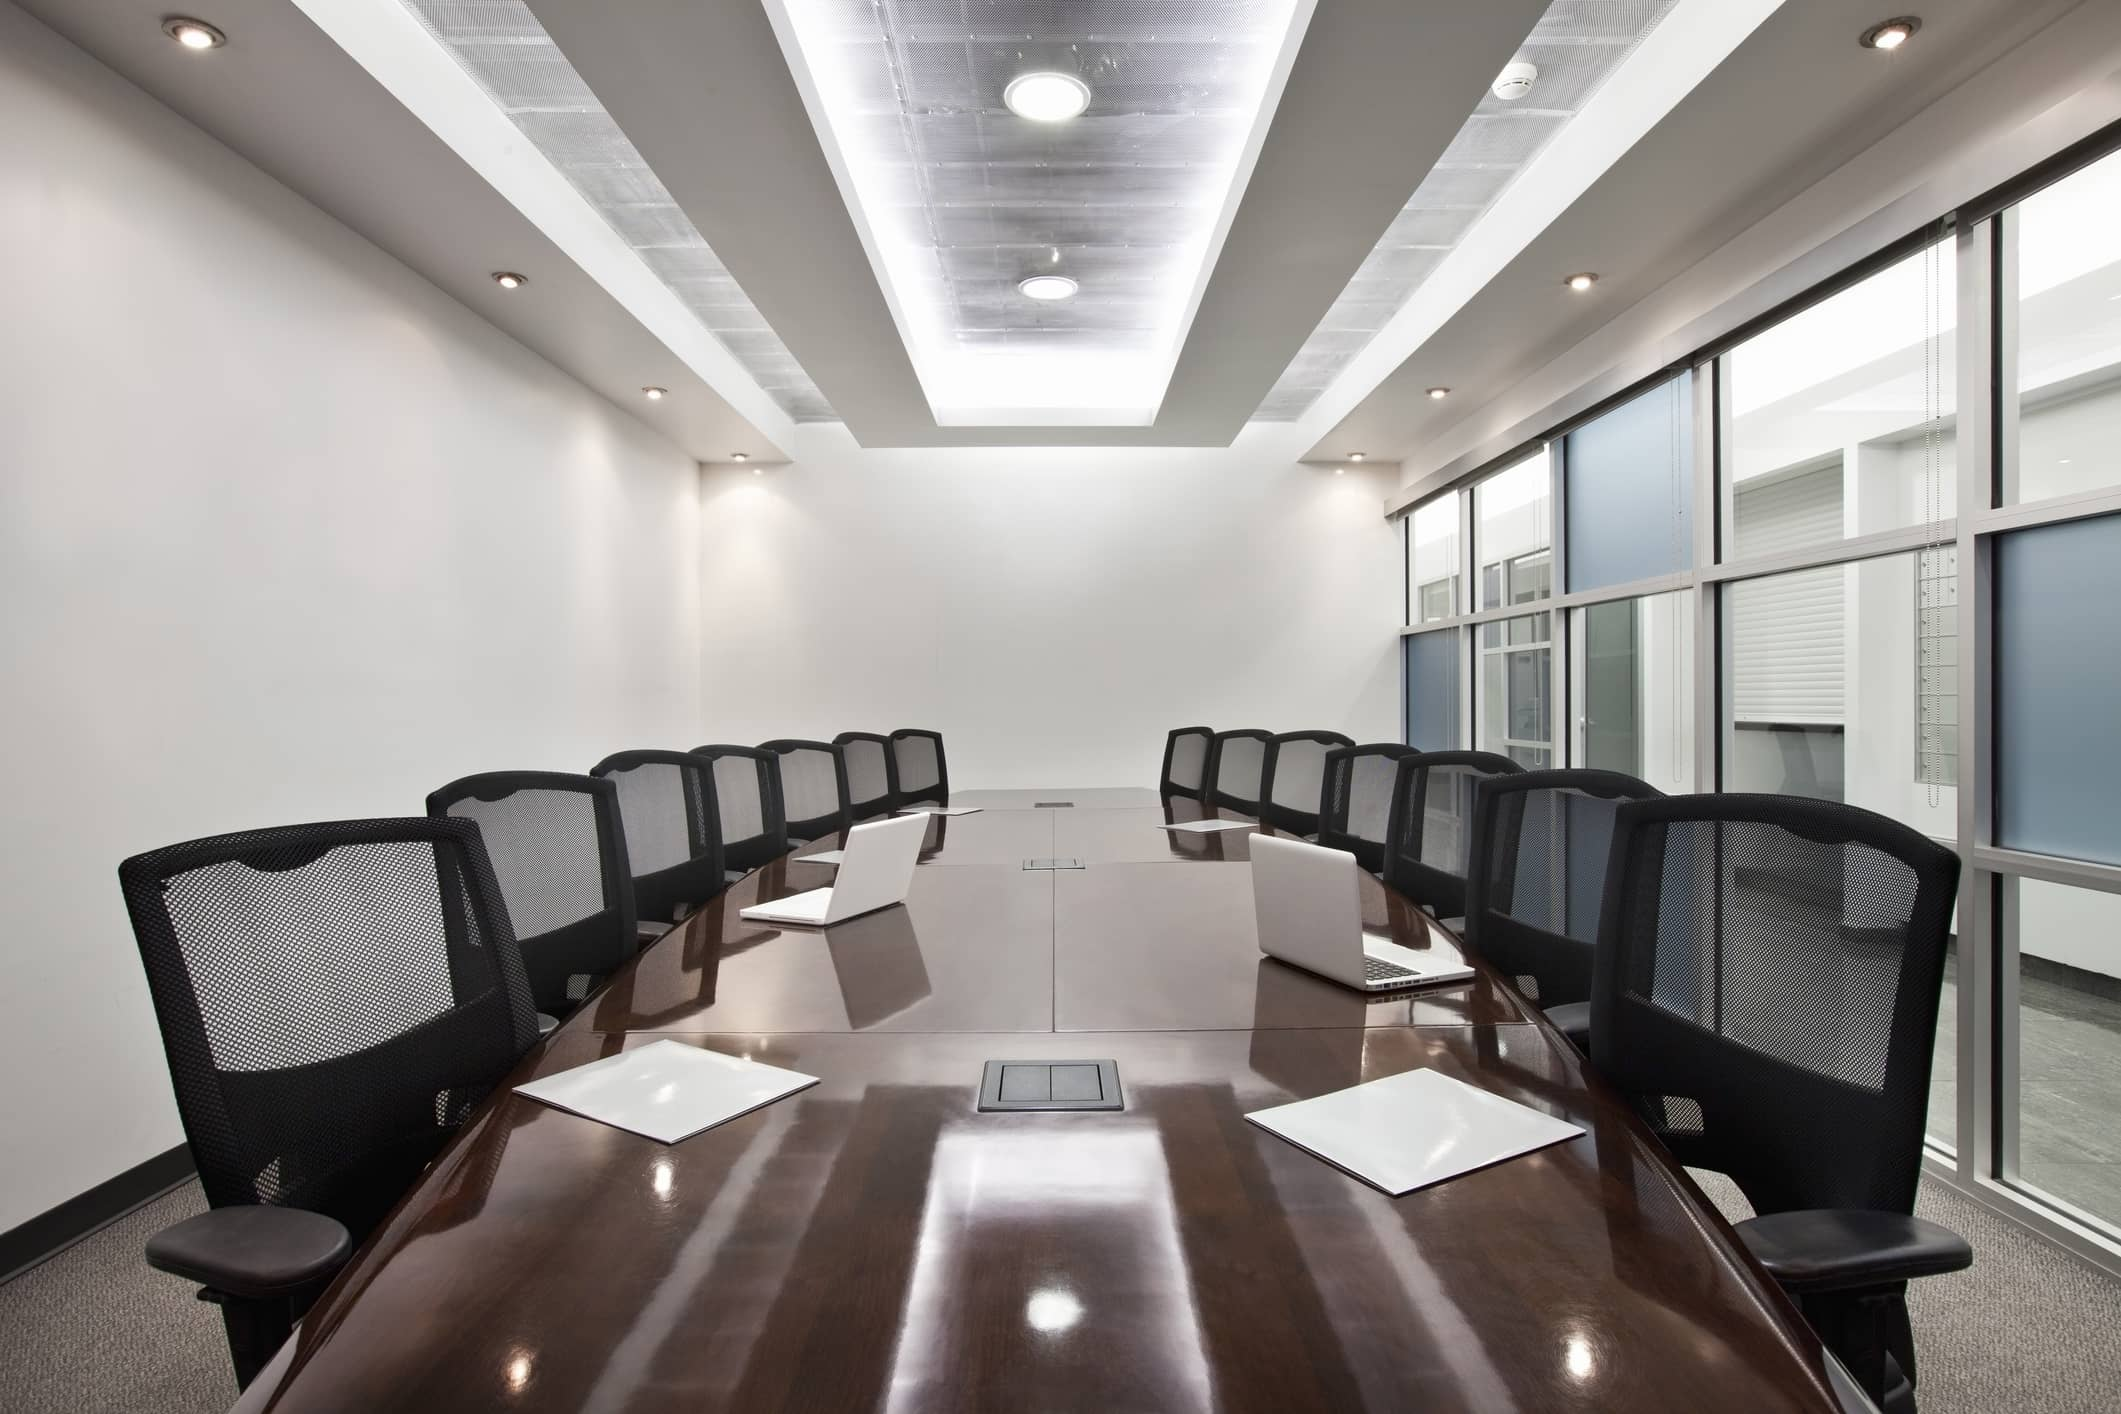 Large corporate executive meeting table in private room with glass windows